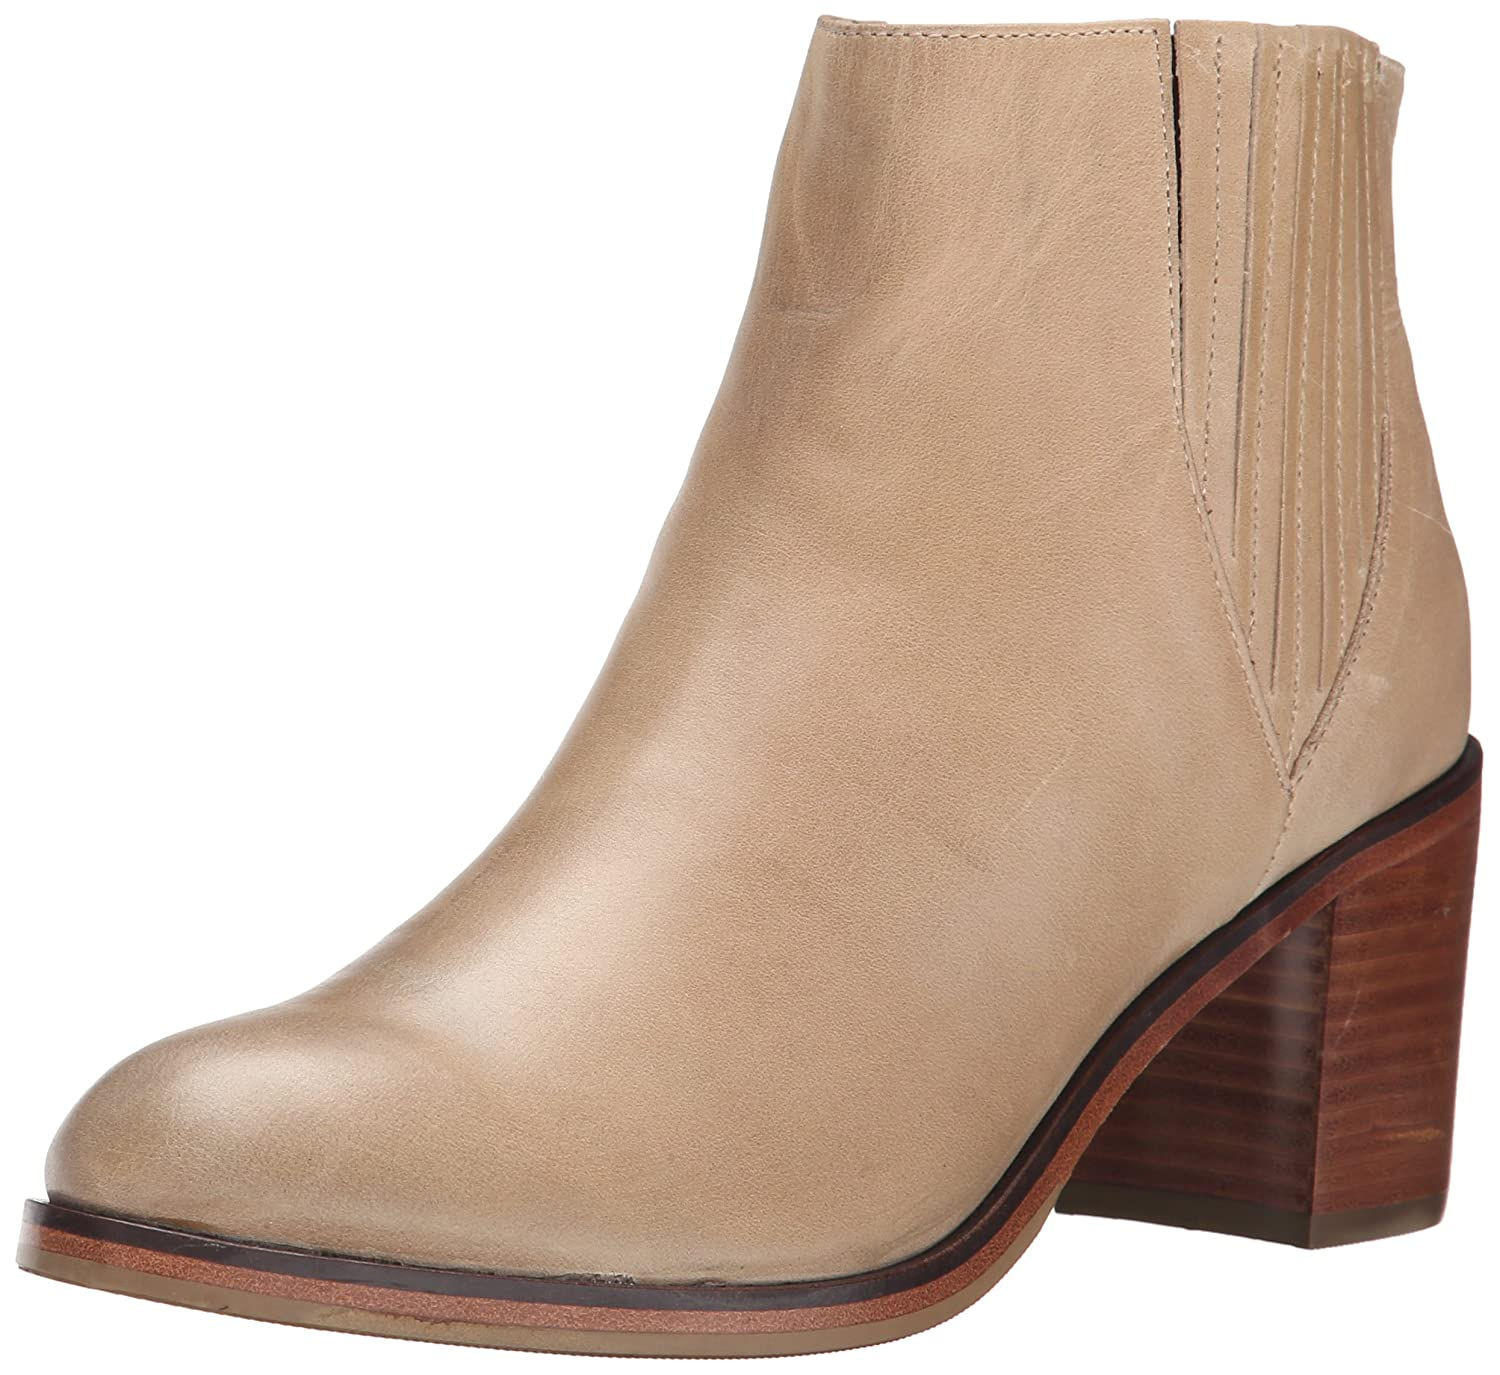 Wolverine Women's 1000 Mile Arc Boot B00BYJ2KYA 8 B(M) US|Taupe